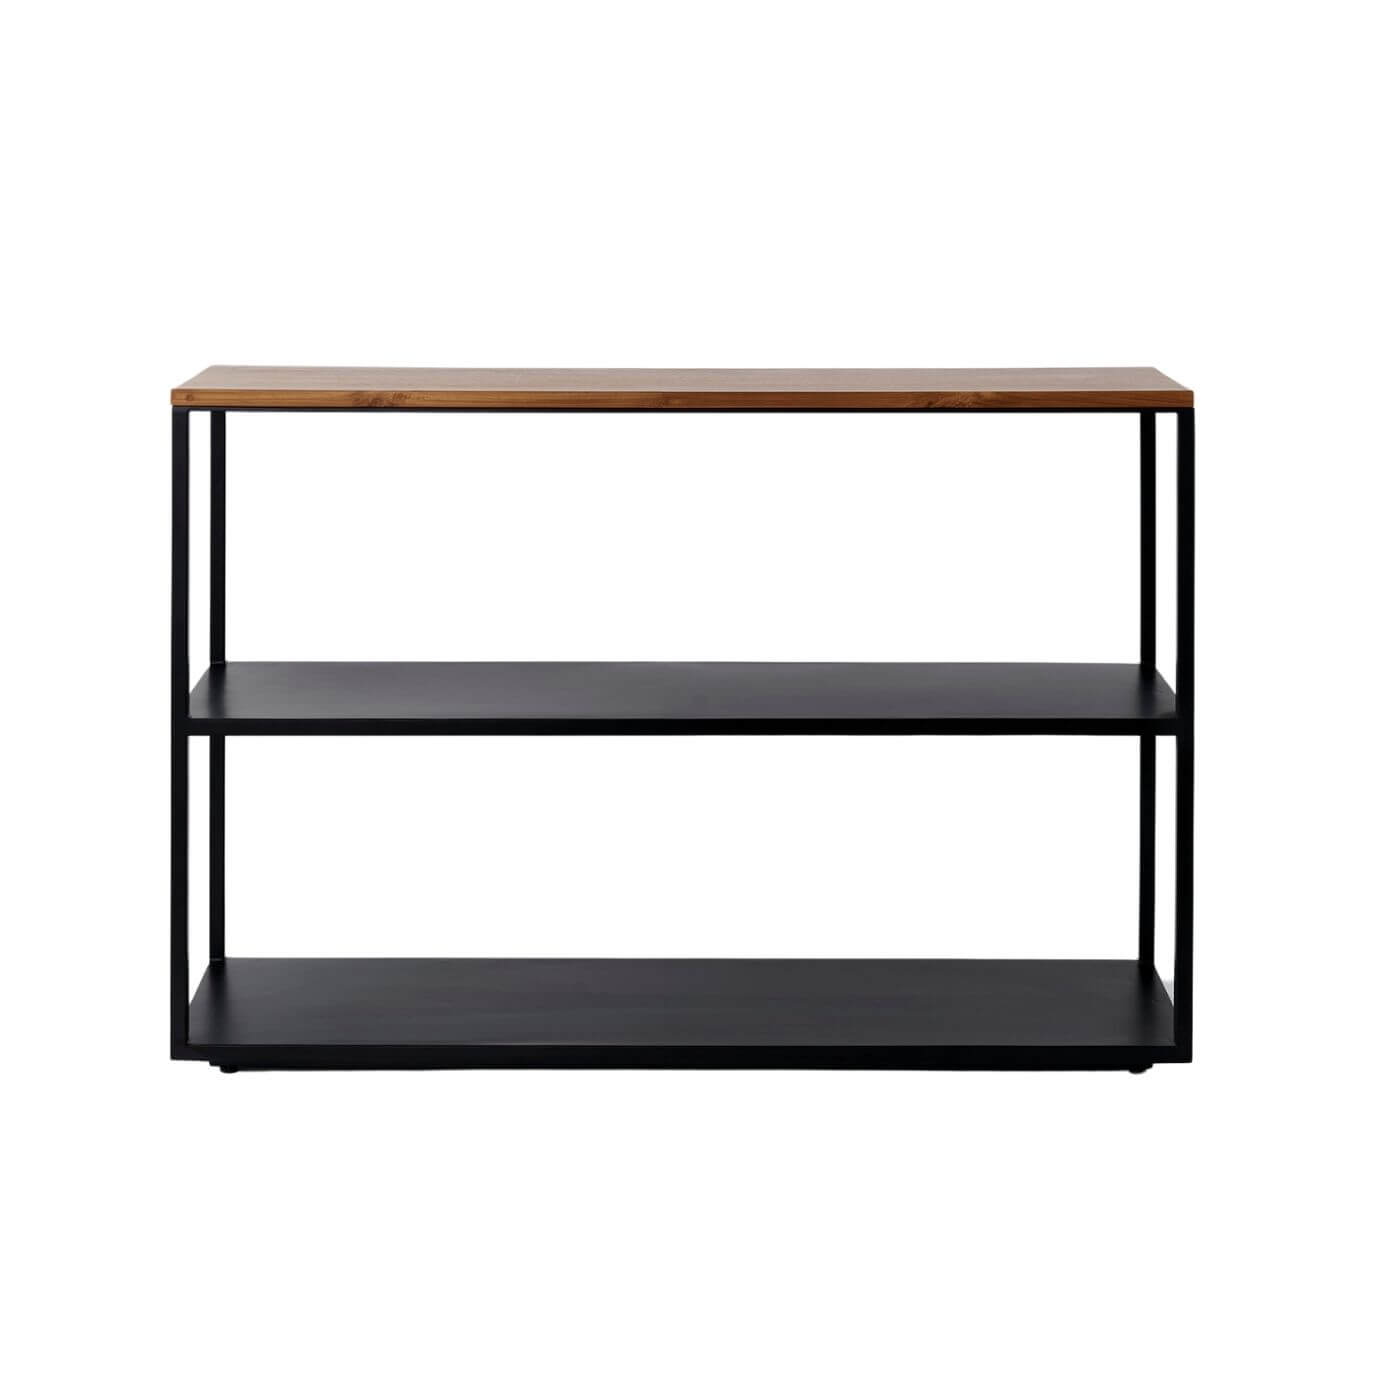 Reddie Furniture Suzy shelf unit black with wood top, on sale on Two Design Lovers